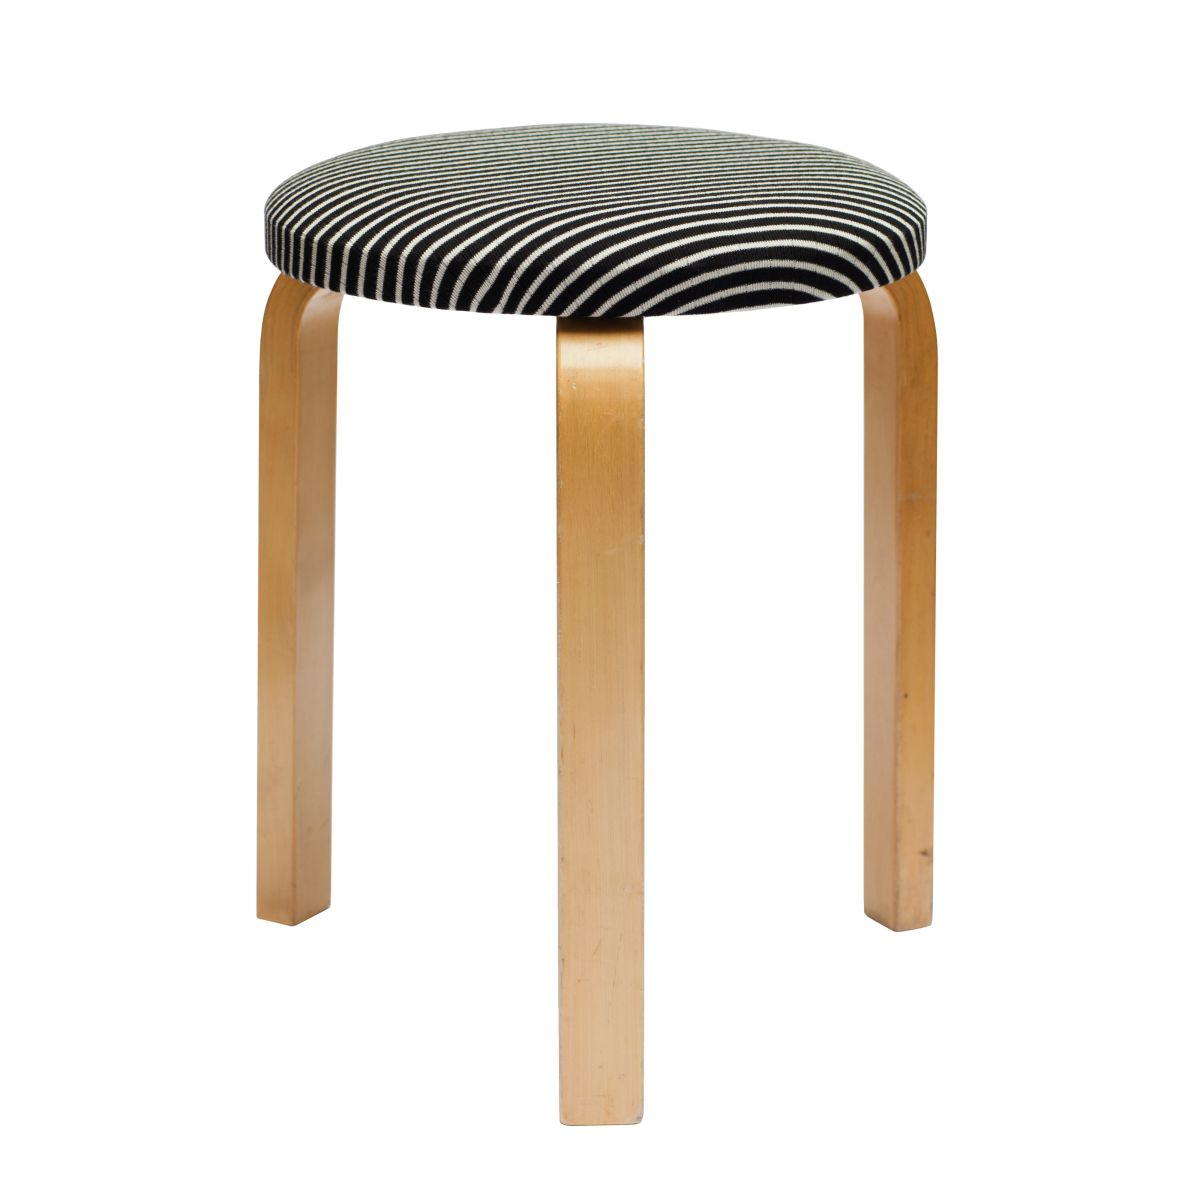 Stool 60 mads norgaard upholstery